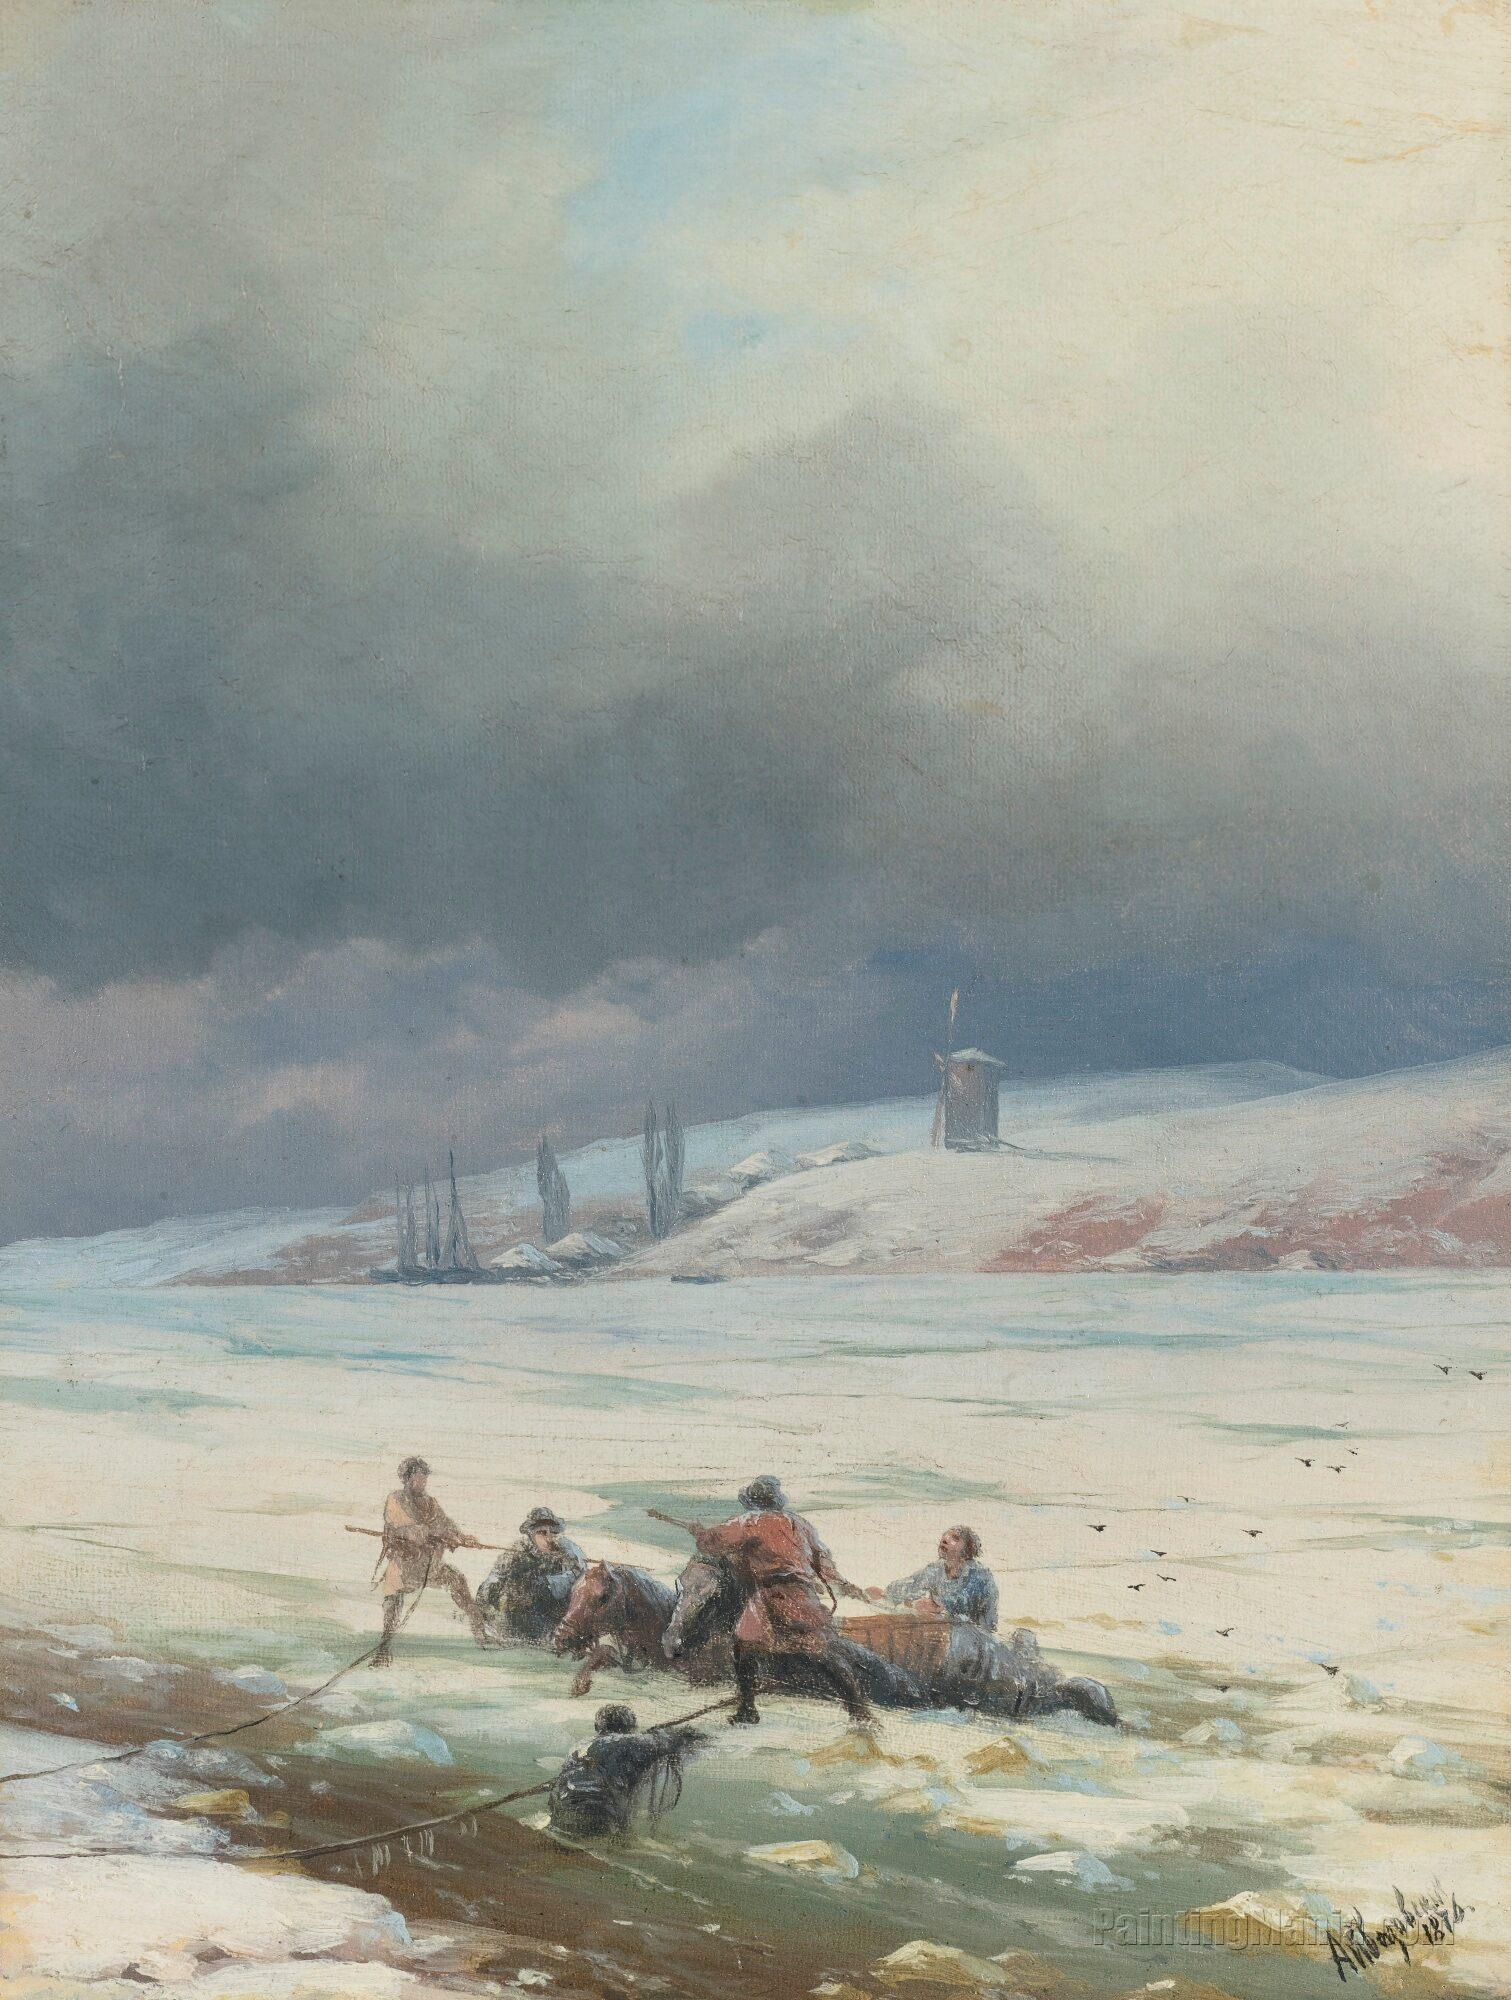 Hauling A Horse and Cart out of Ice